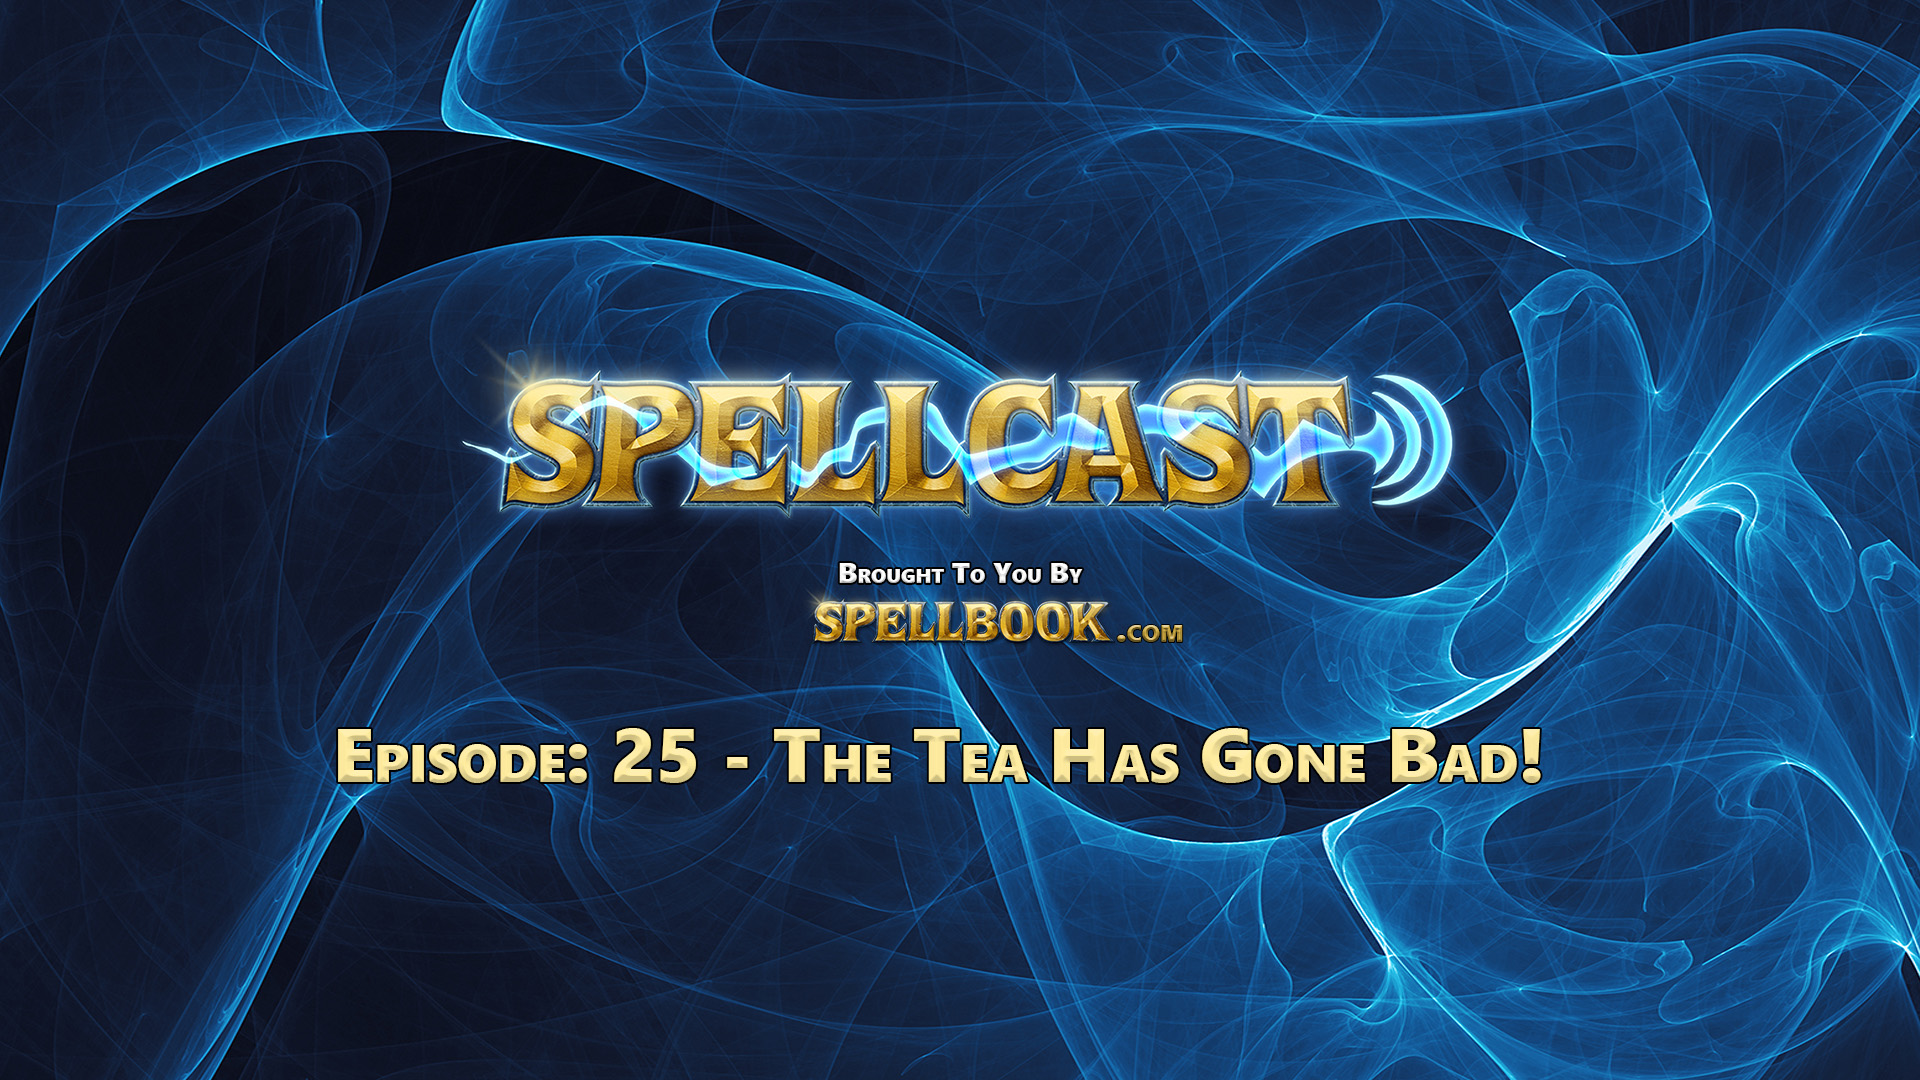 Spellcast Episode: 25 - The Tea Has Gone Bad!